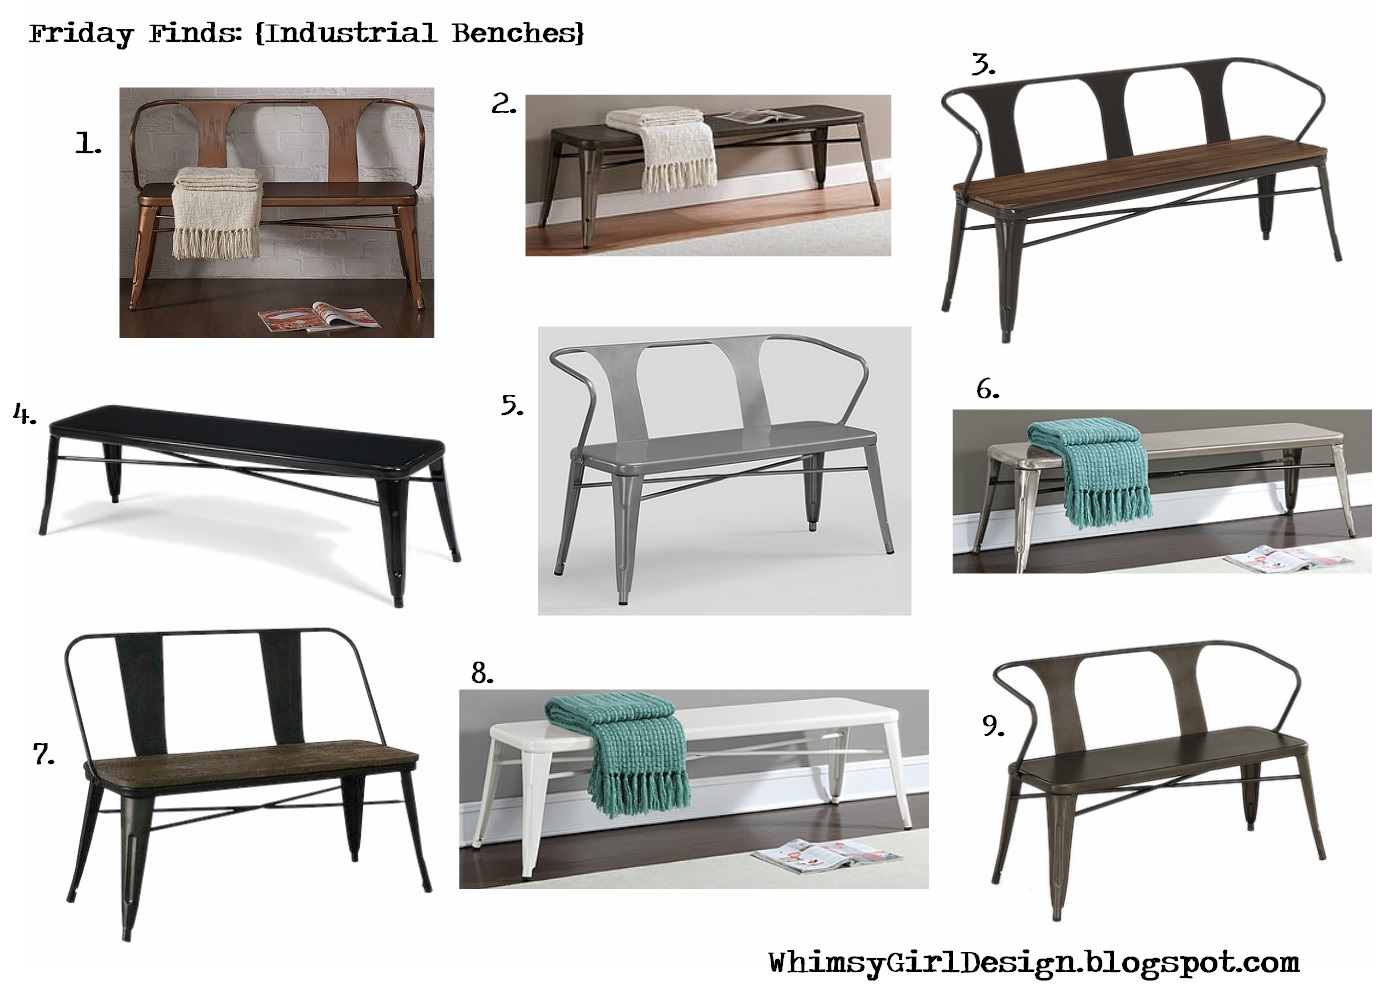 Affiliate Links To Each Bench Are Listed Below The Picture Just Click On Corresponding Number Description Find Benches Pictured